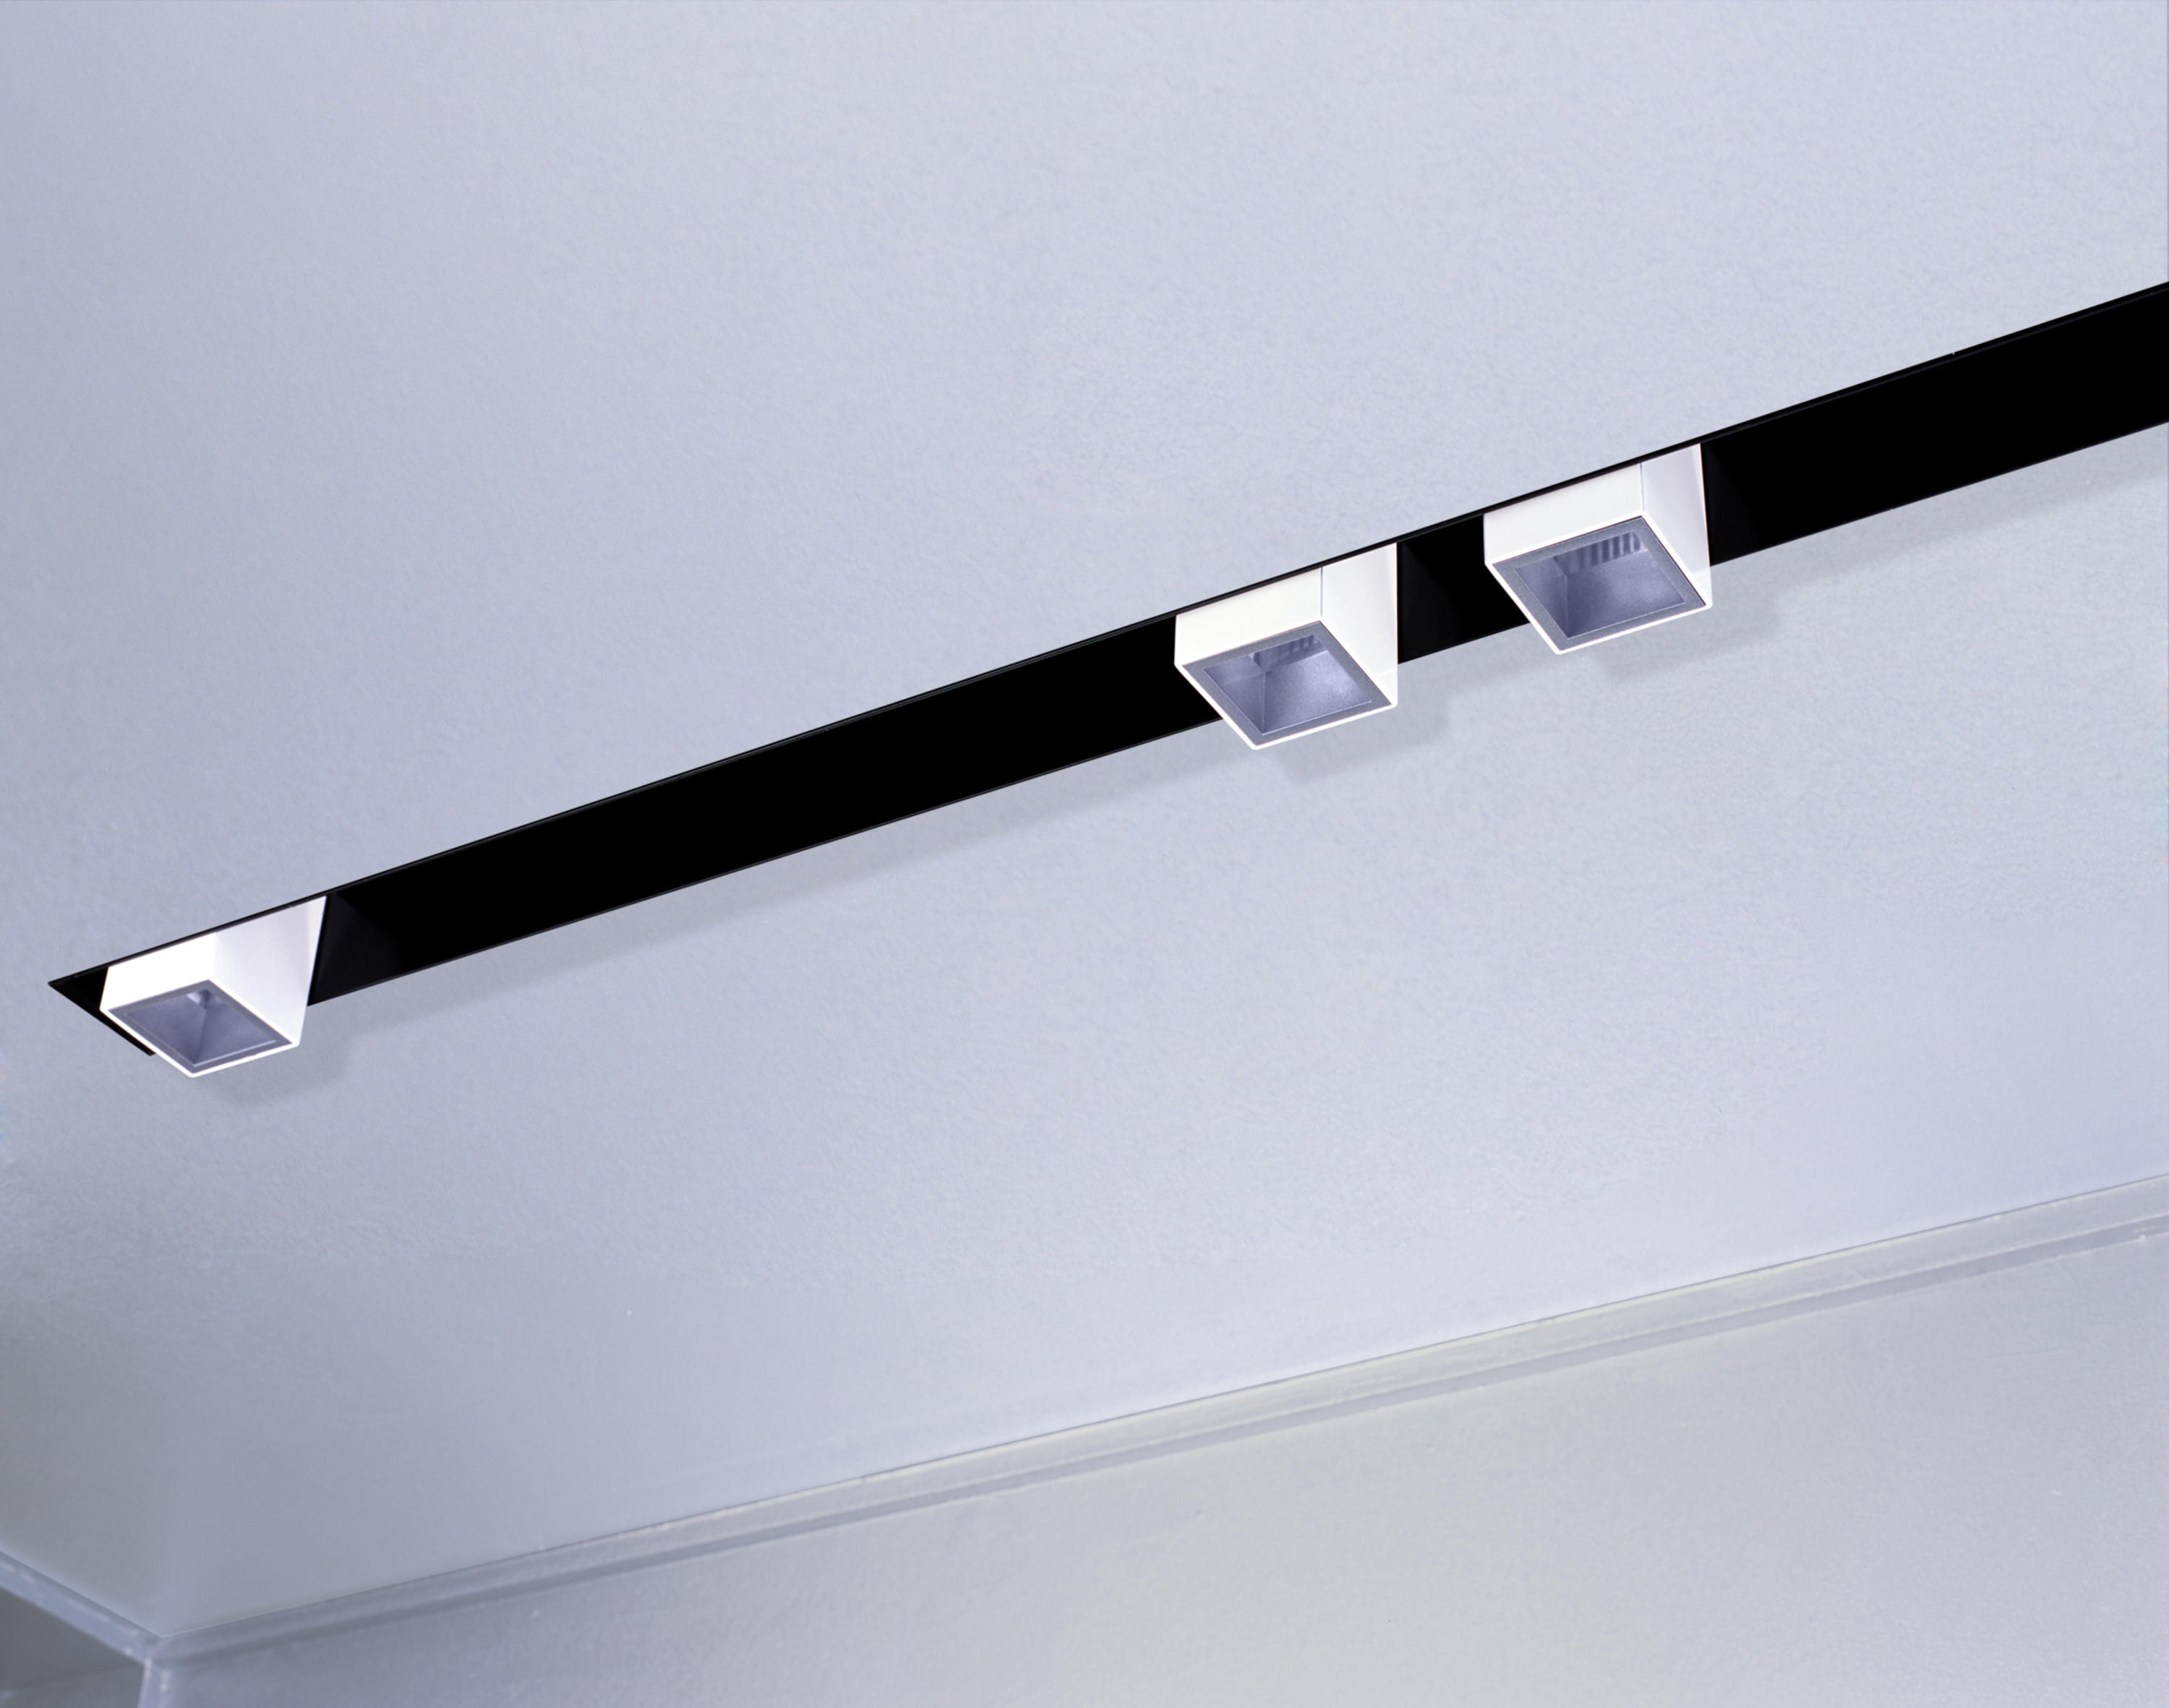 chrome ceiling bars adjustable lighting light endon spotlights el spotlight image fittings track